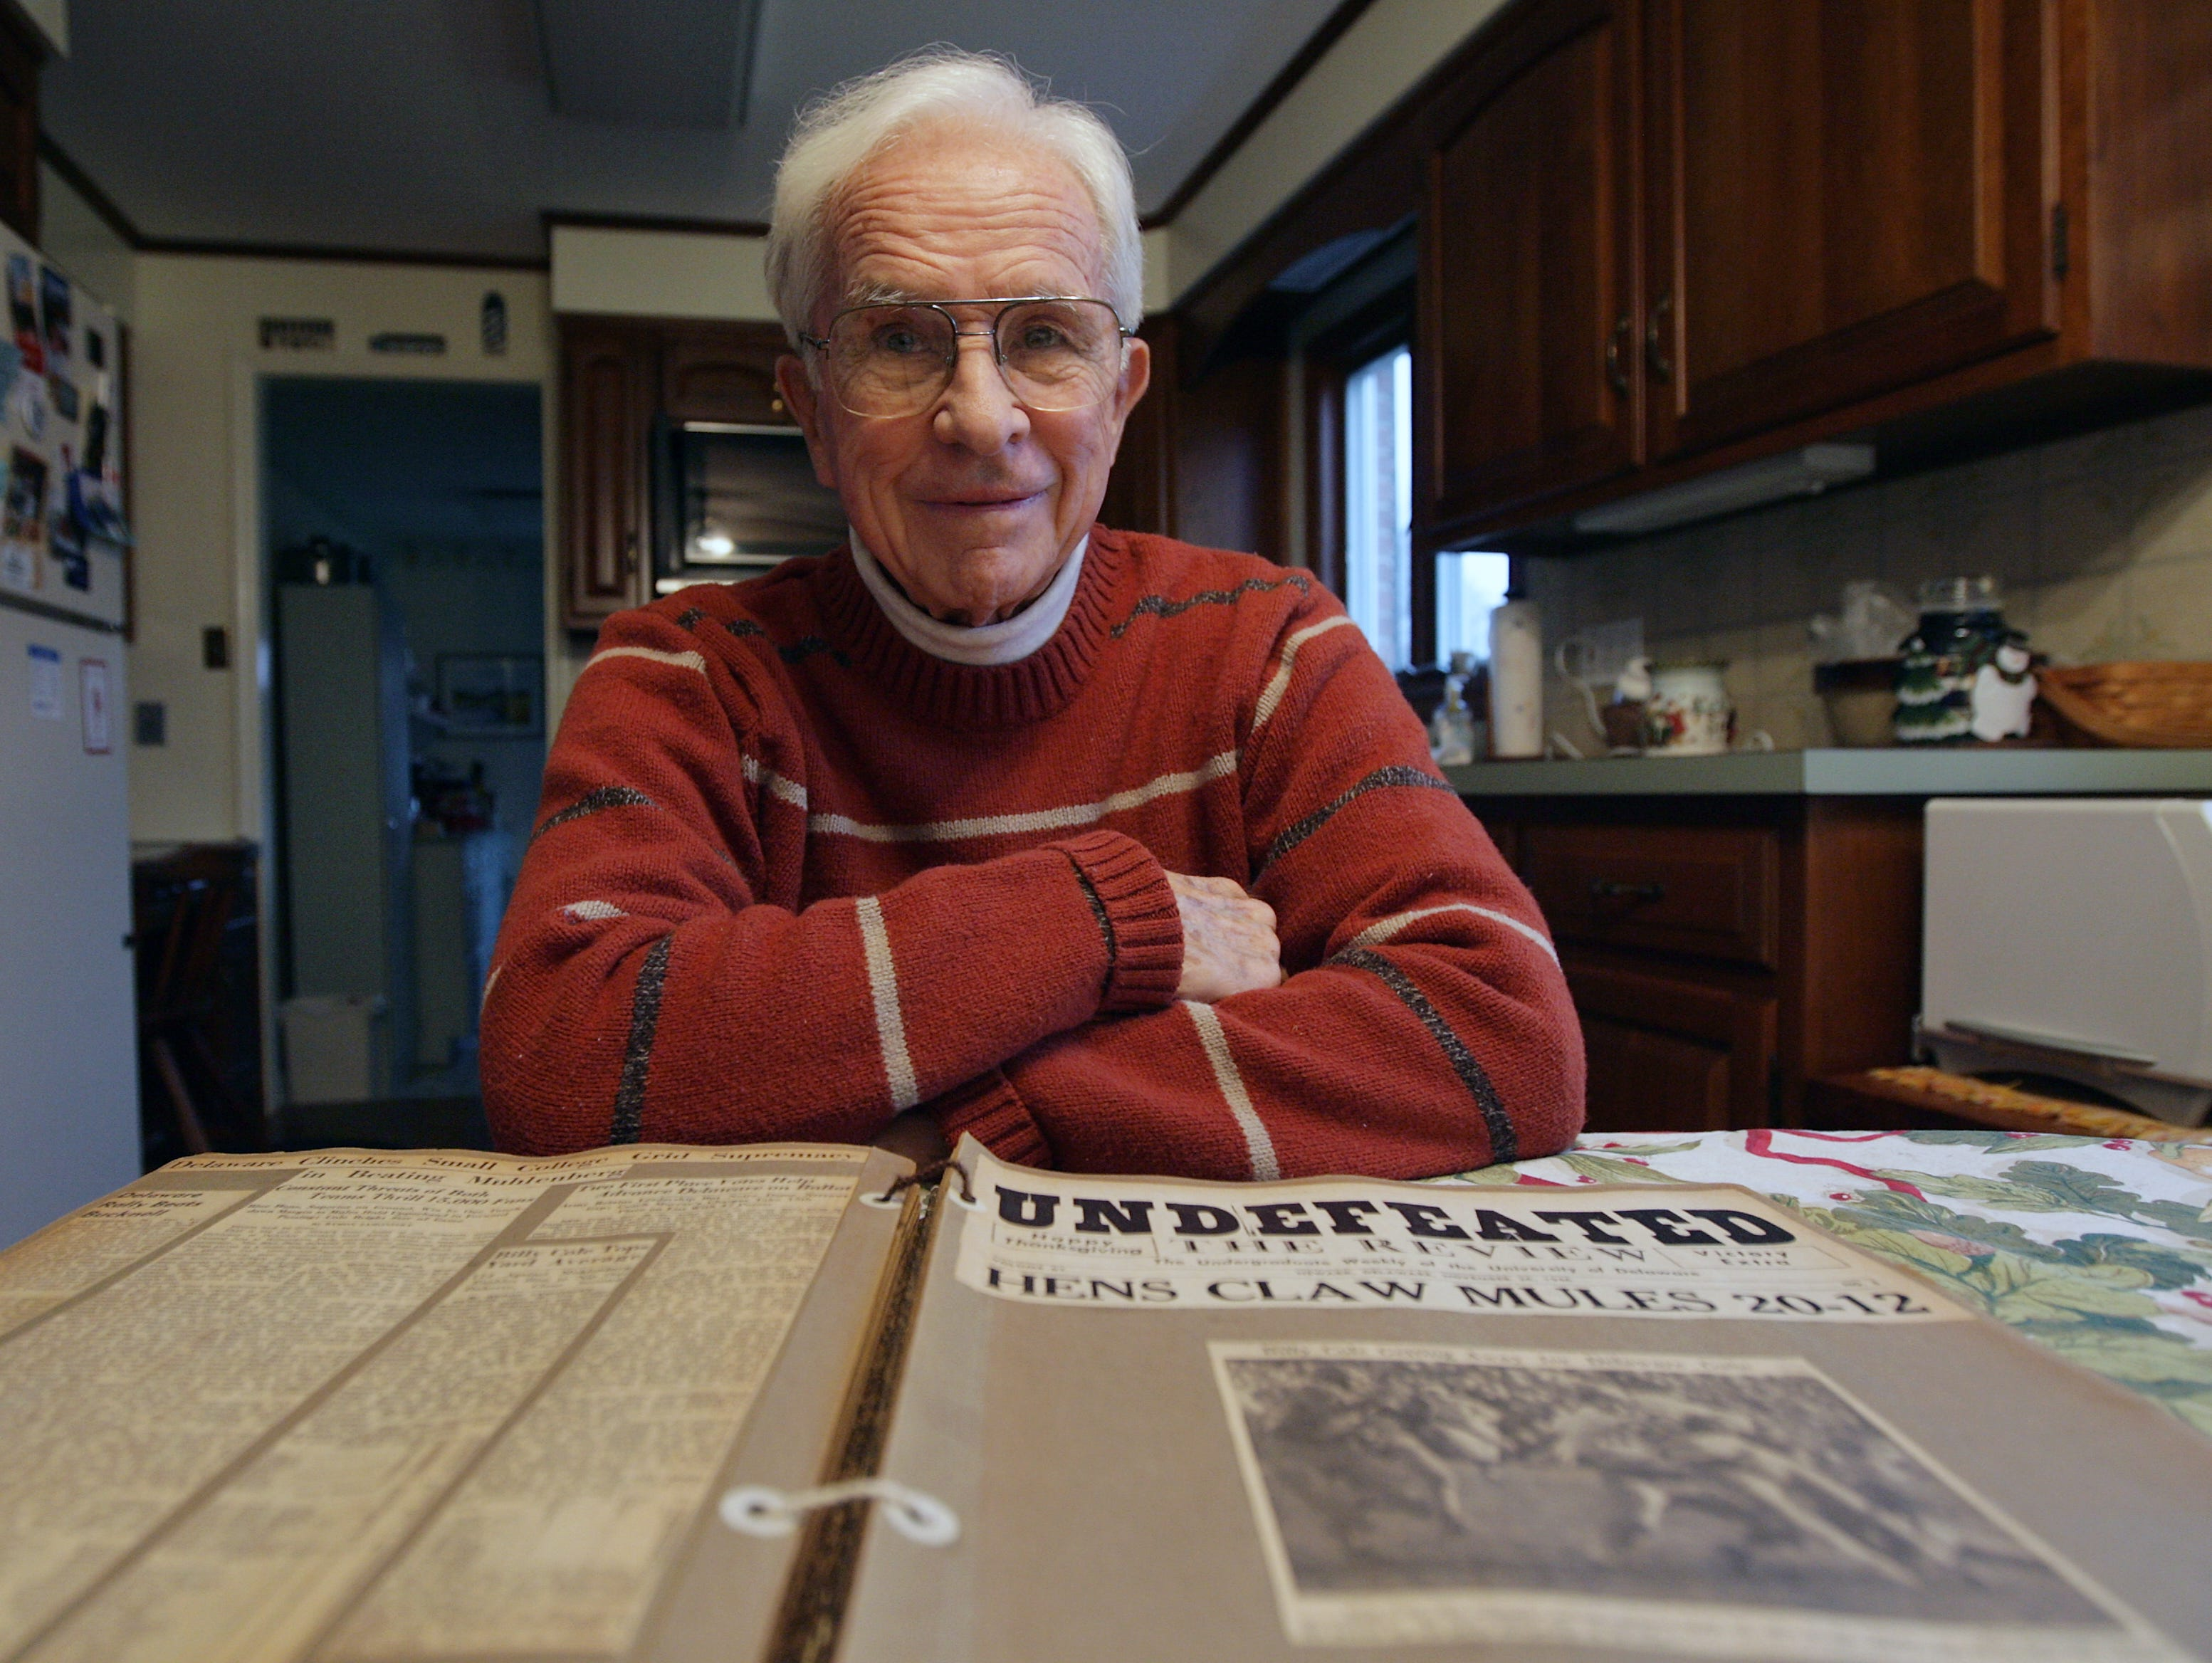 Delaware Sports Hall-of-Famer Bill Cole, who distinguished himself as a University of Delaware athlete and William Penn High coach, died Saturday night after a long illness.